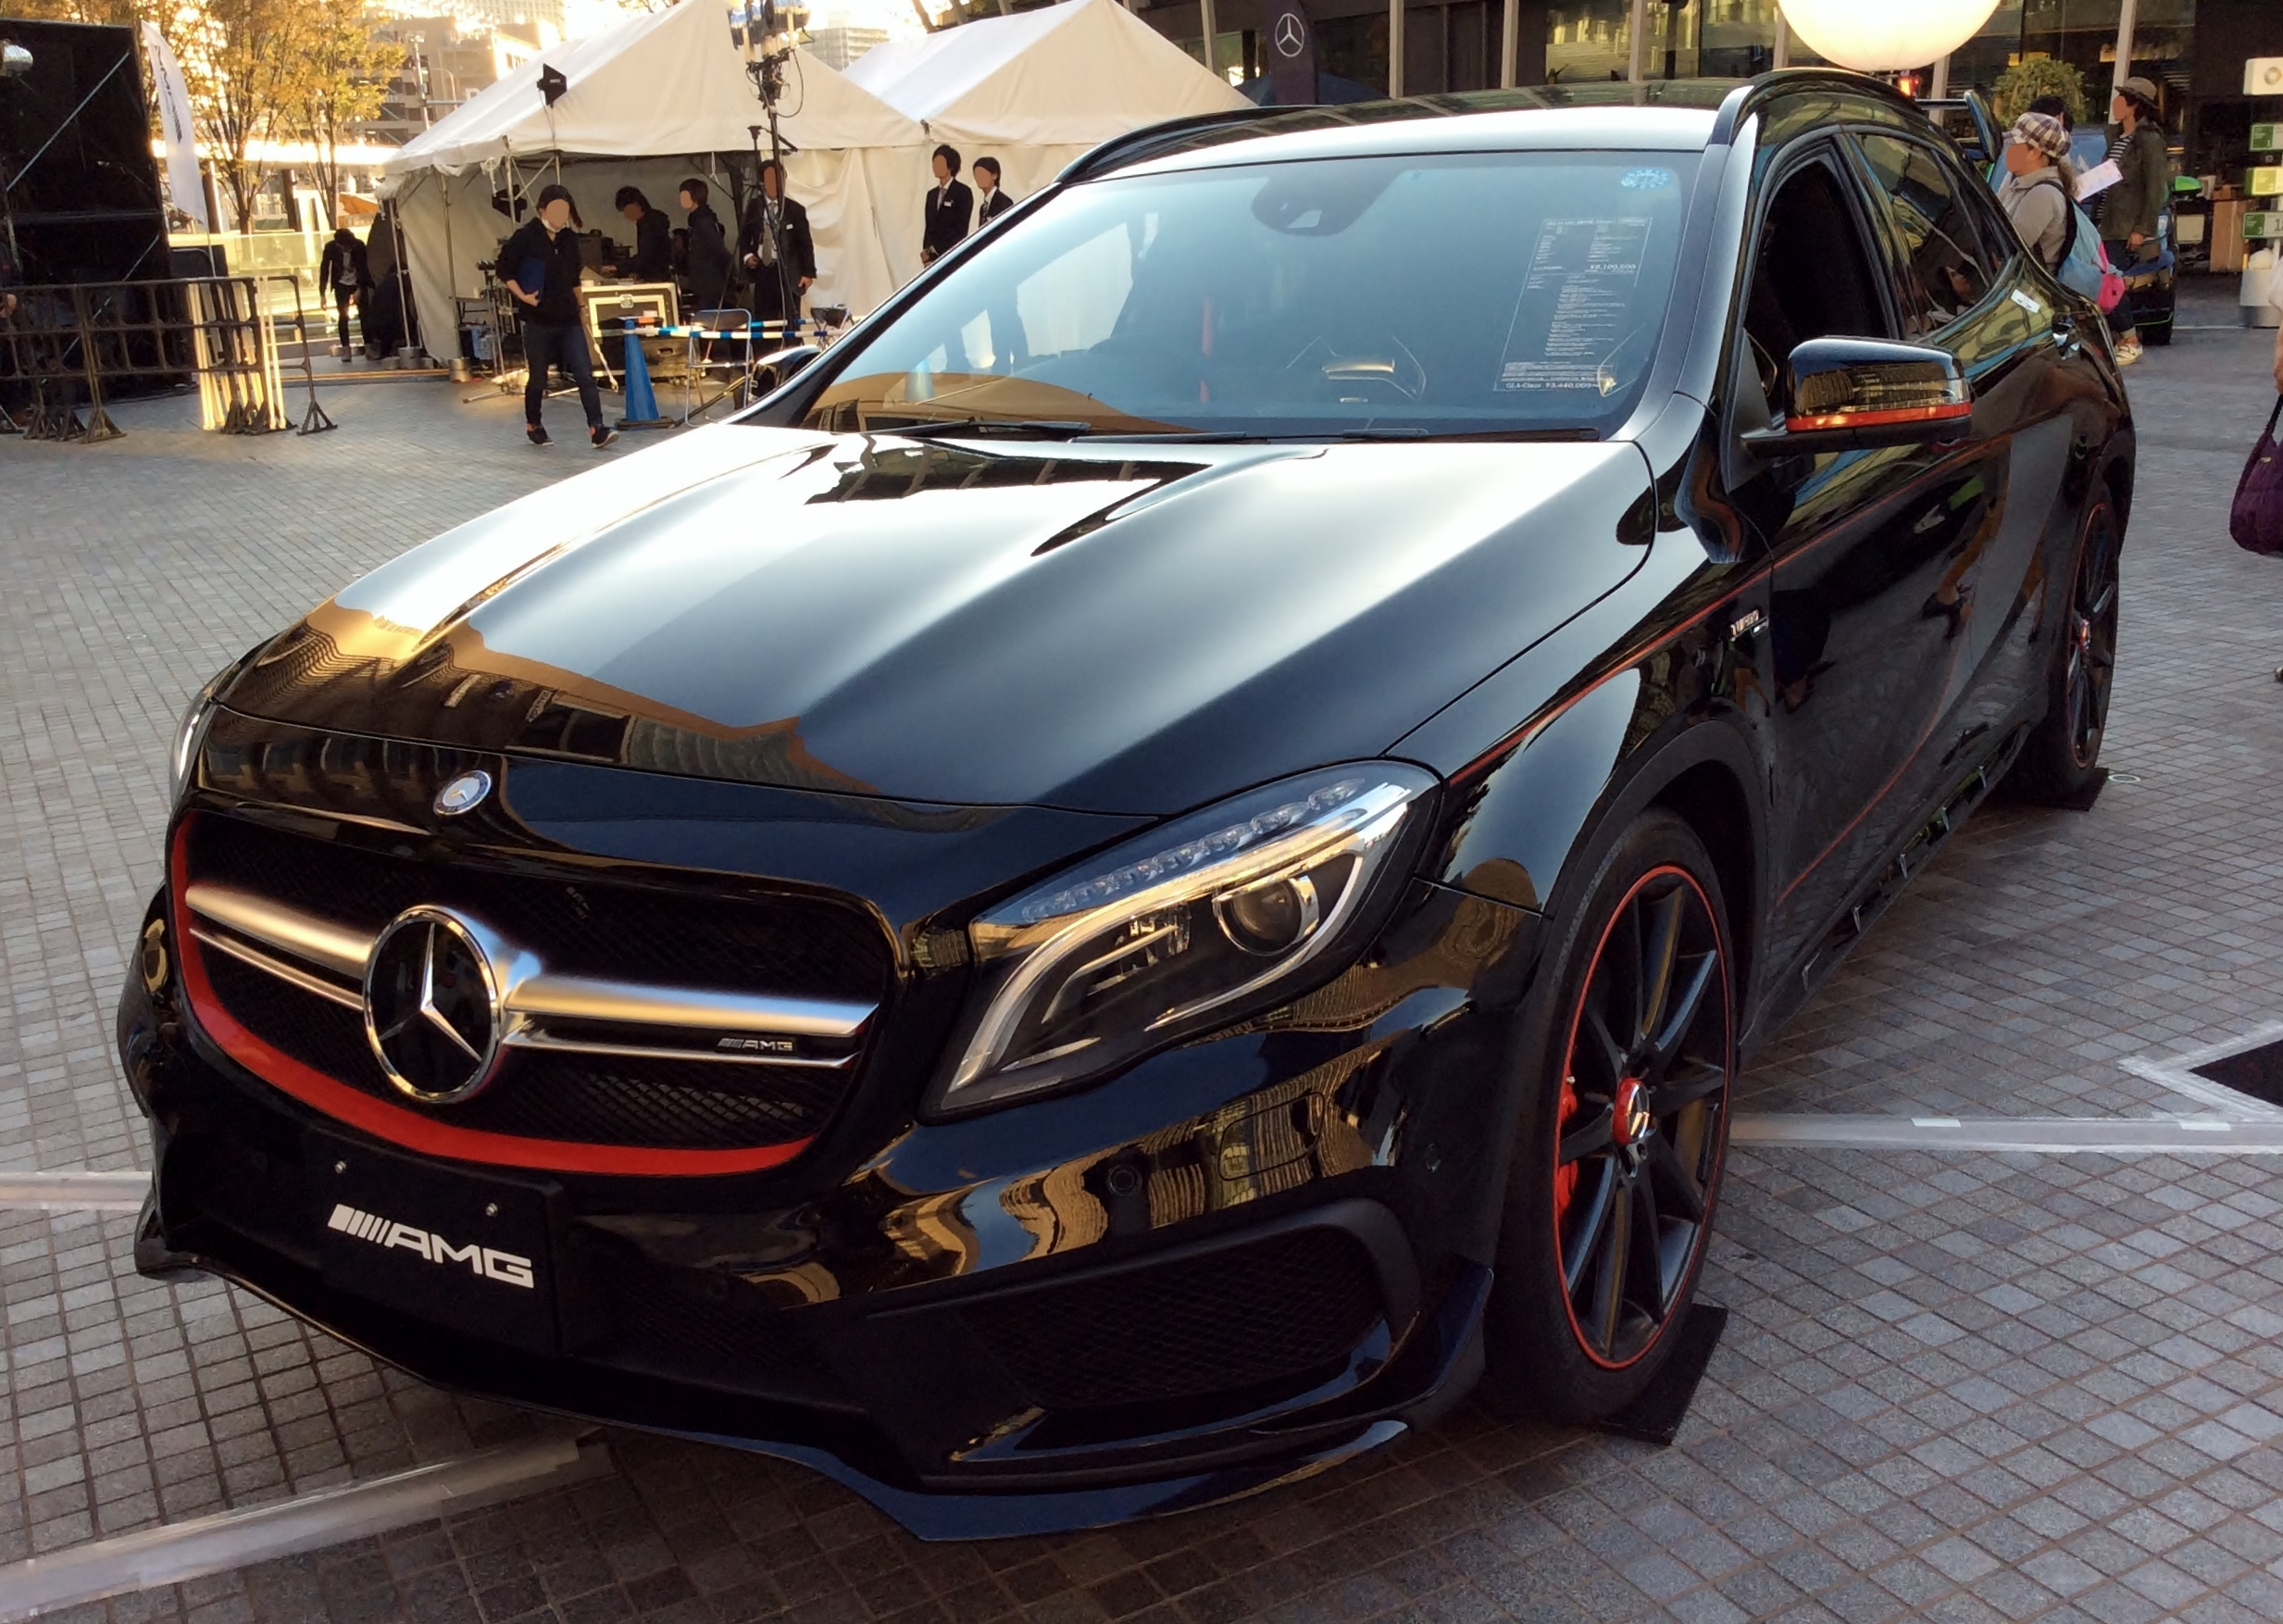 File:The frontview of Mercedes-Benz GLA45 AMG 4MATIC Edition 1 (X156 ...